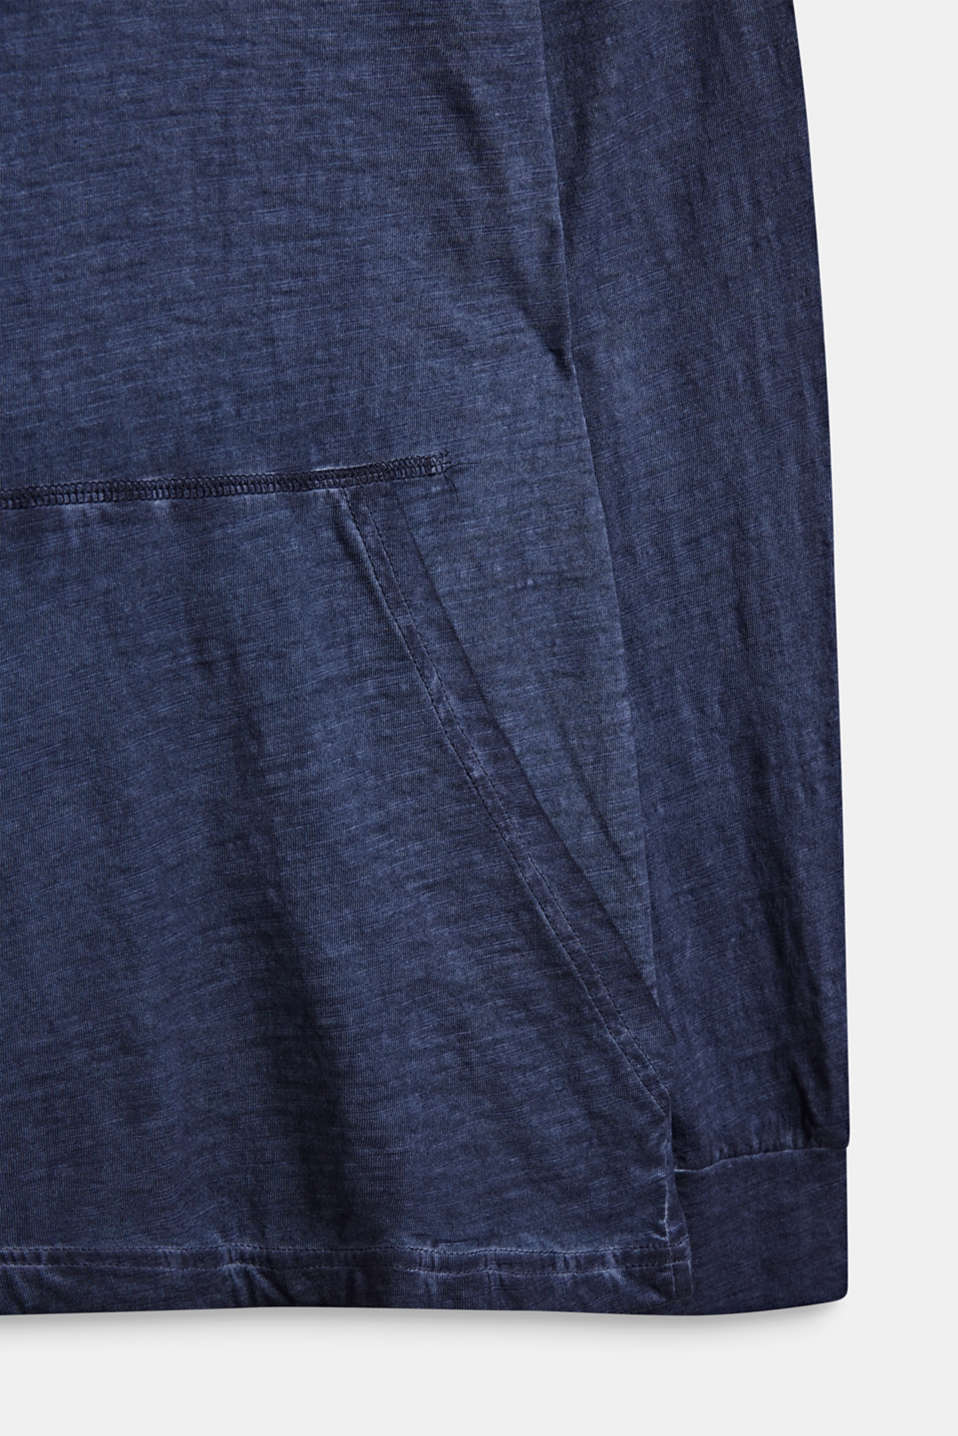 Hooded long sleeve top with a casual dye effect, LCMIDNIGHT BLUE, detail image number 2